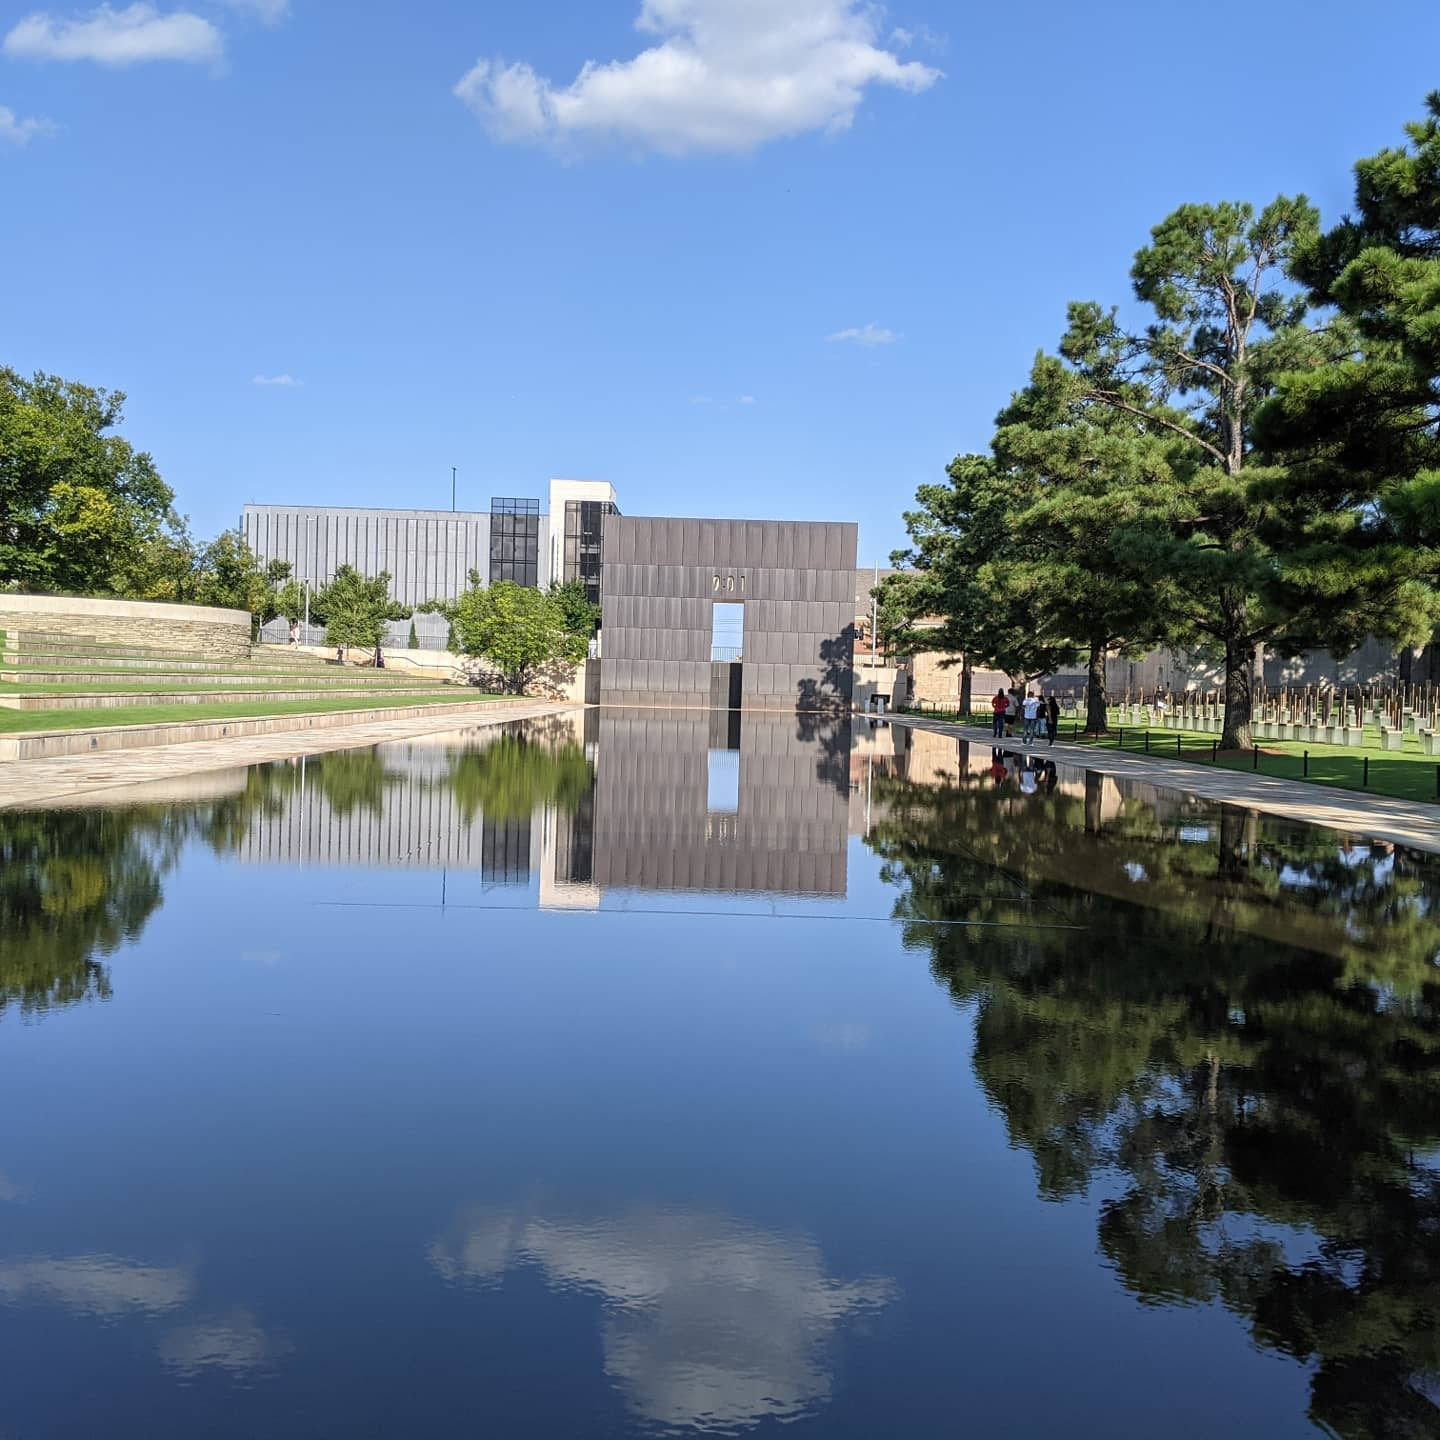 It occured to me that in all the times I've been here since I lived here, not once have I made it to the Murrah building memorial.  #oklahoma